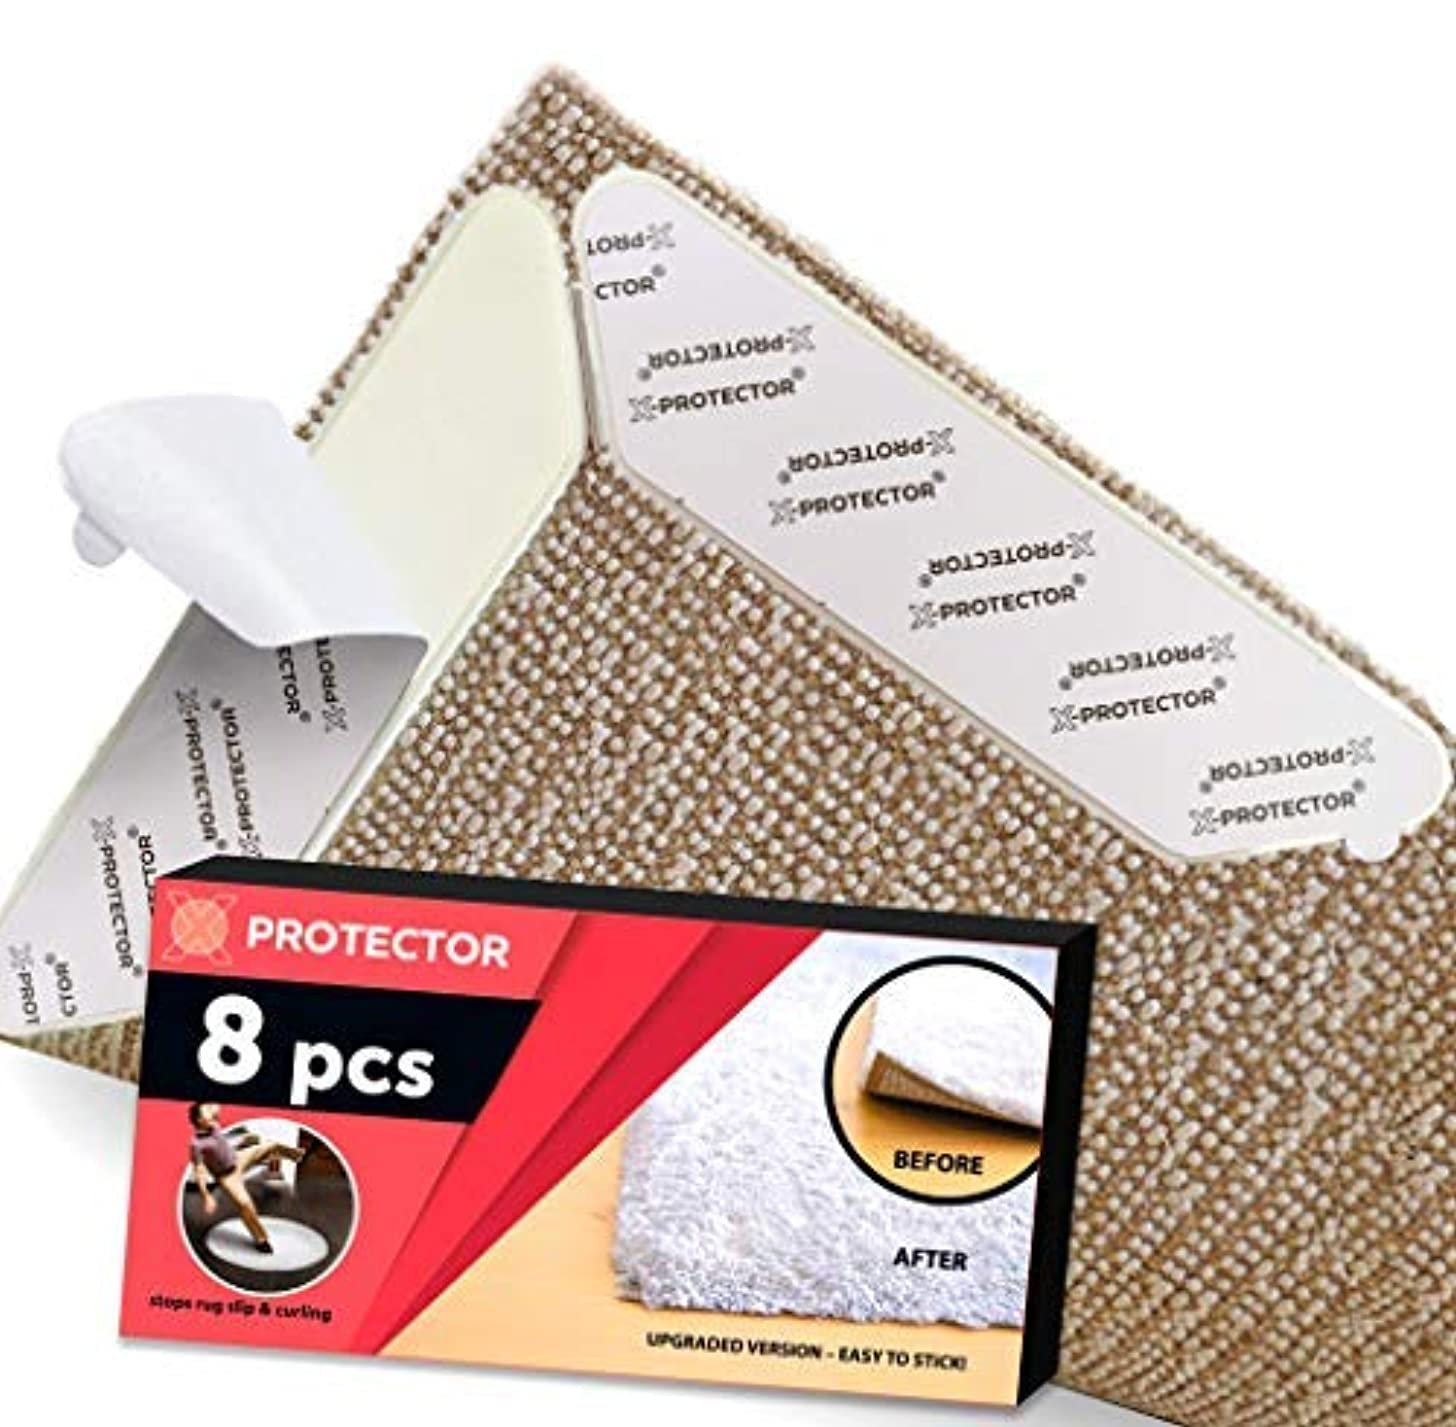 Rug Grippers X-PROTECTOR – NEW 8 pcs Anti Curling Rug Gripper – Rug Pad. Keeps Your Rug in Place & Corners Flat. Carpet Gripper Renewable Gripper Tape – Rug Tape. ORIGINAL BRAND - AVOID THE COPIES!